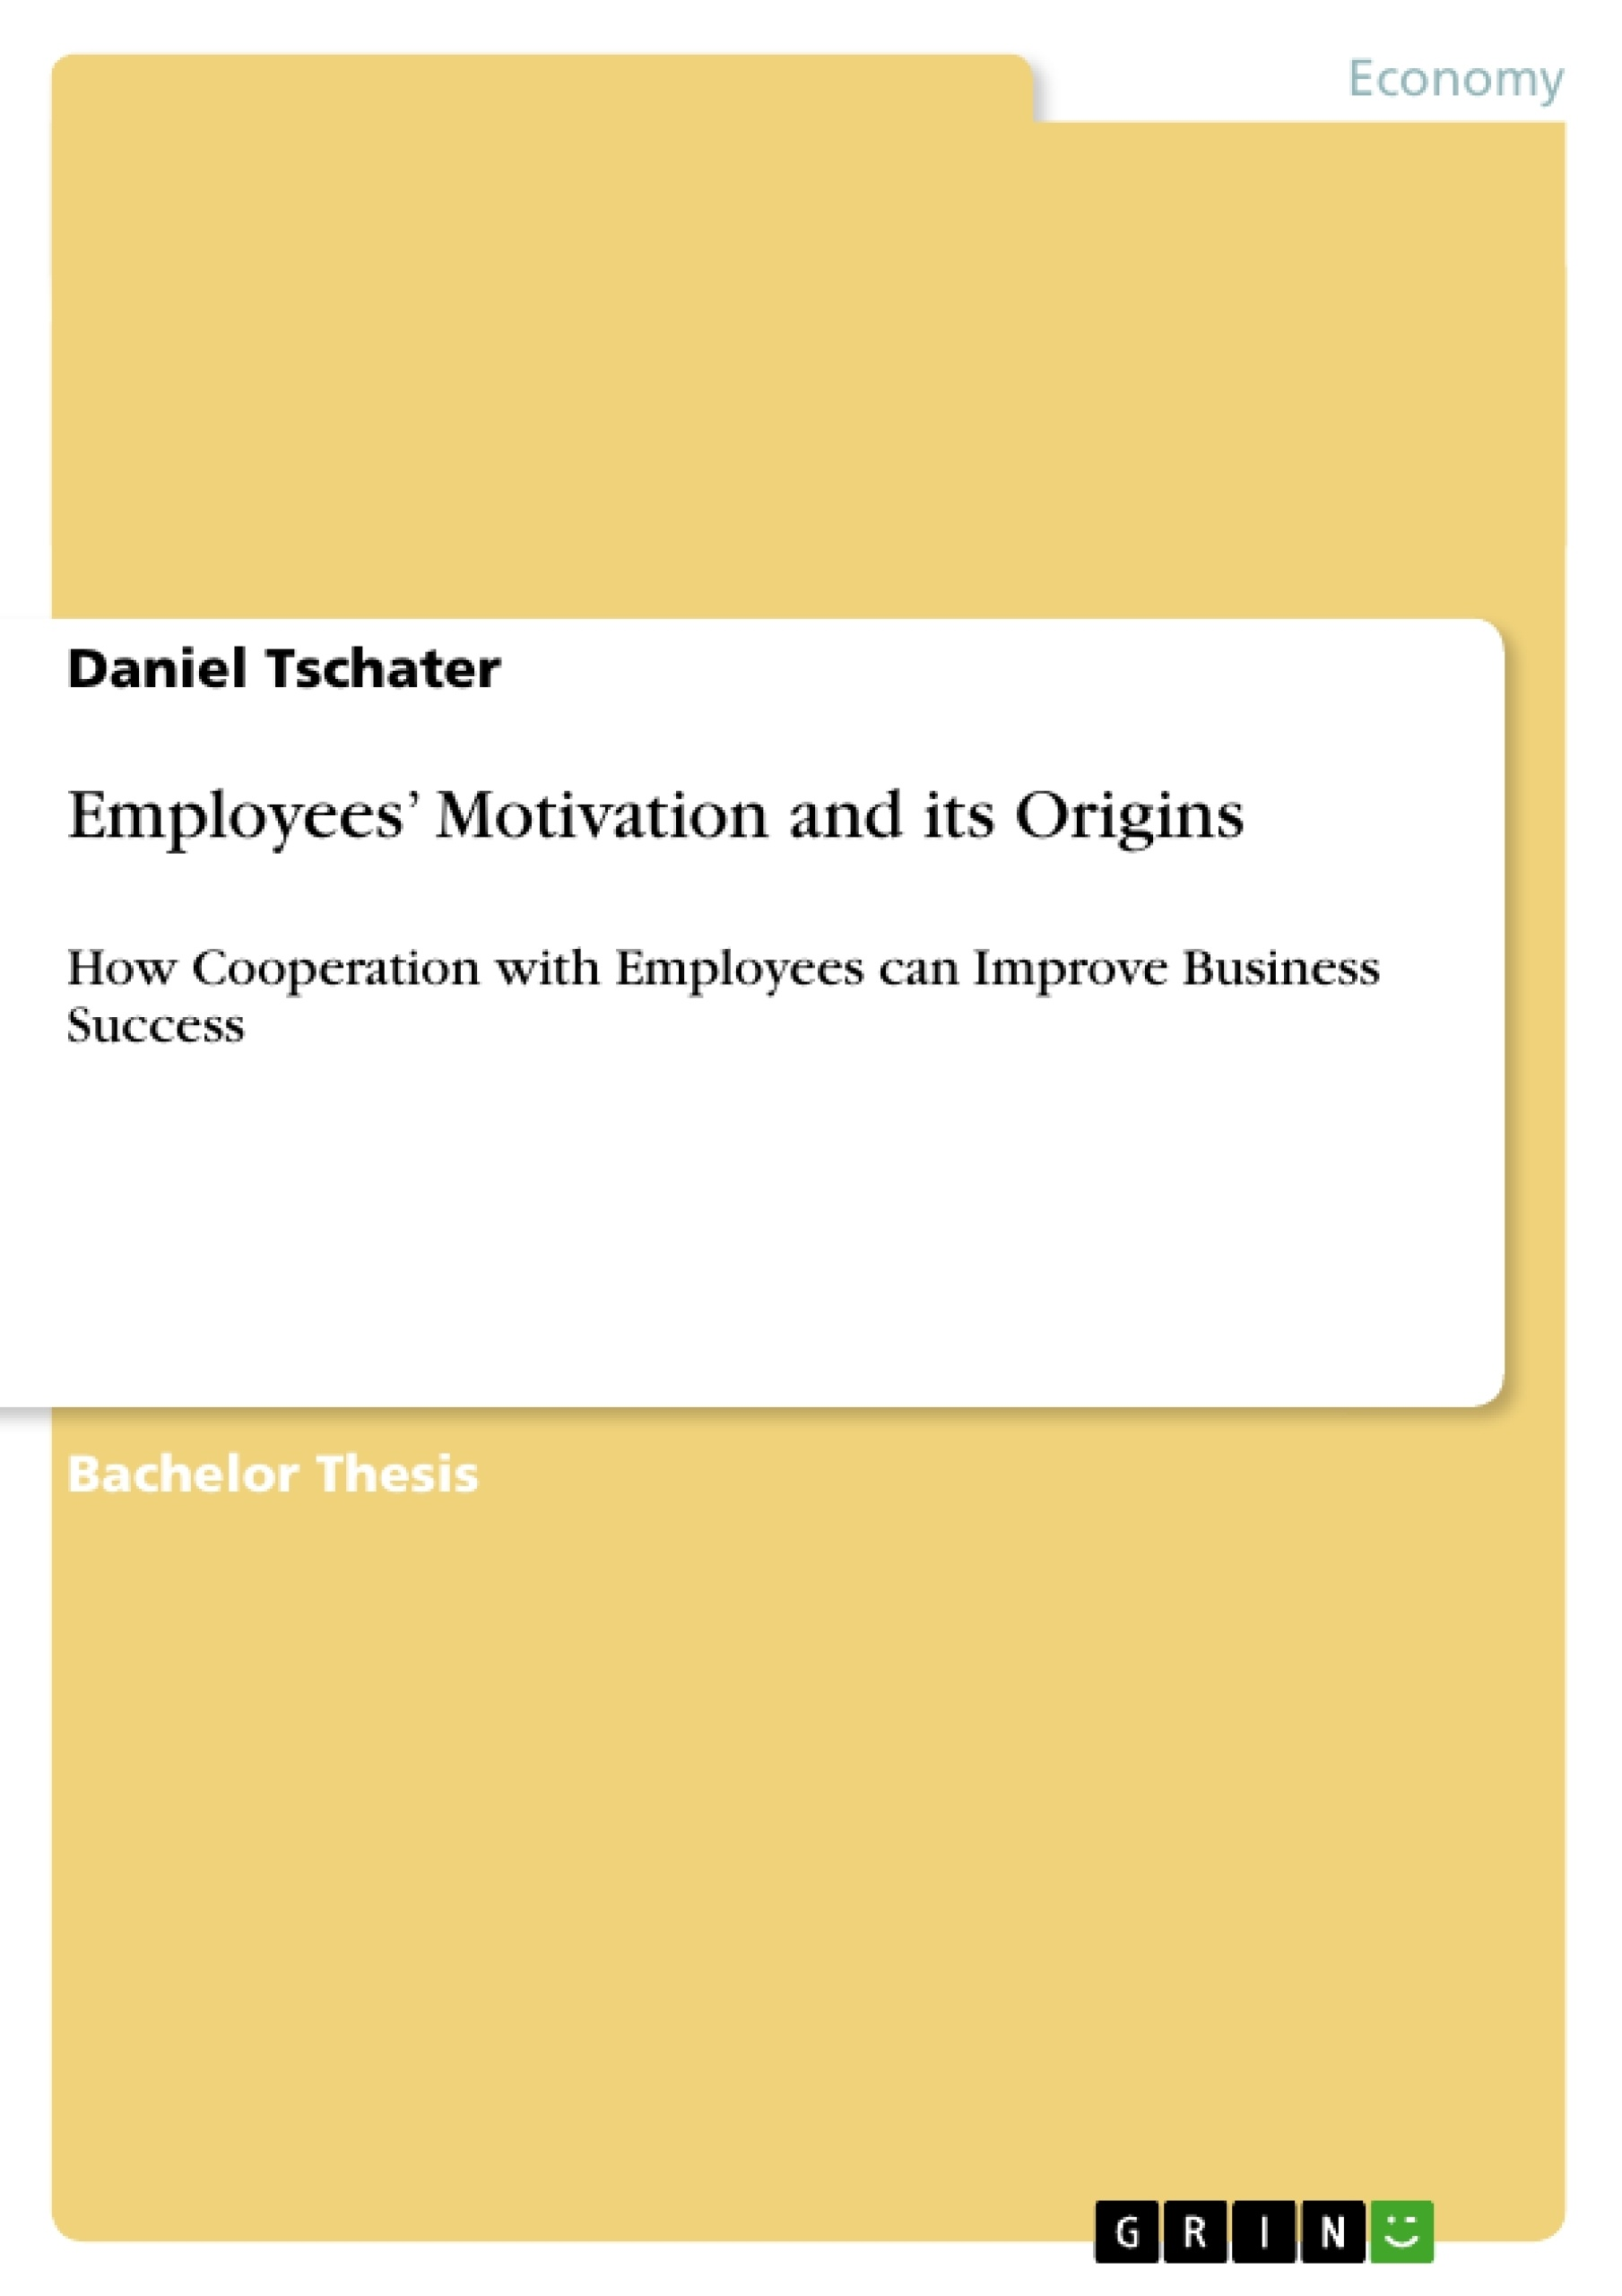 Title: Employees' Motivation and its Origins